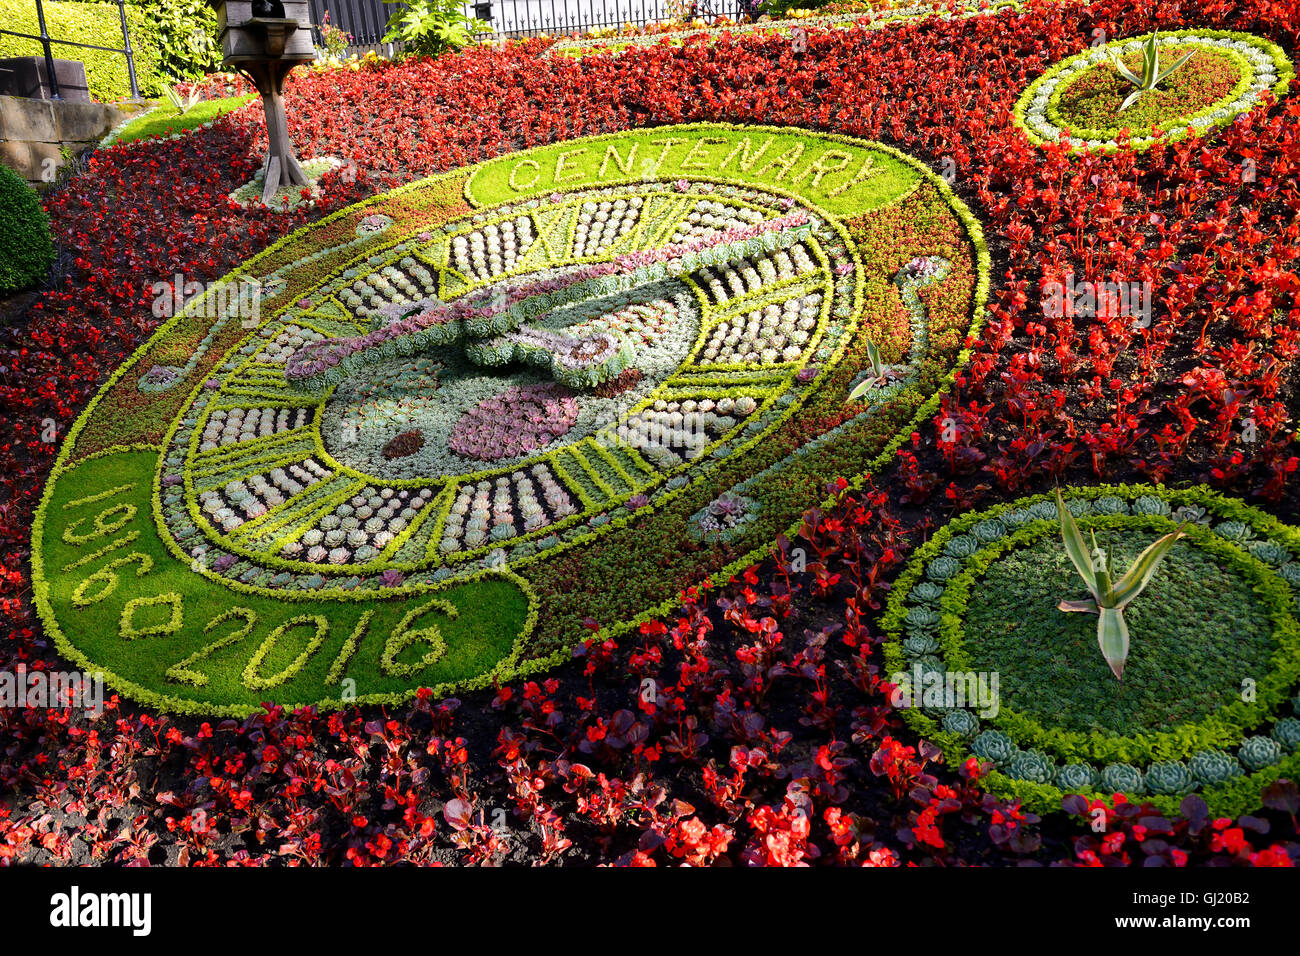 Floral clock in Princes Street Gardens, Edinburgh, Scotland - Stock Image